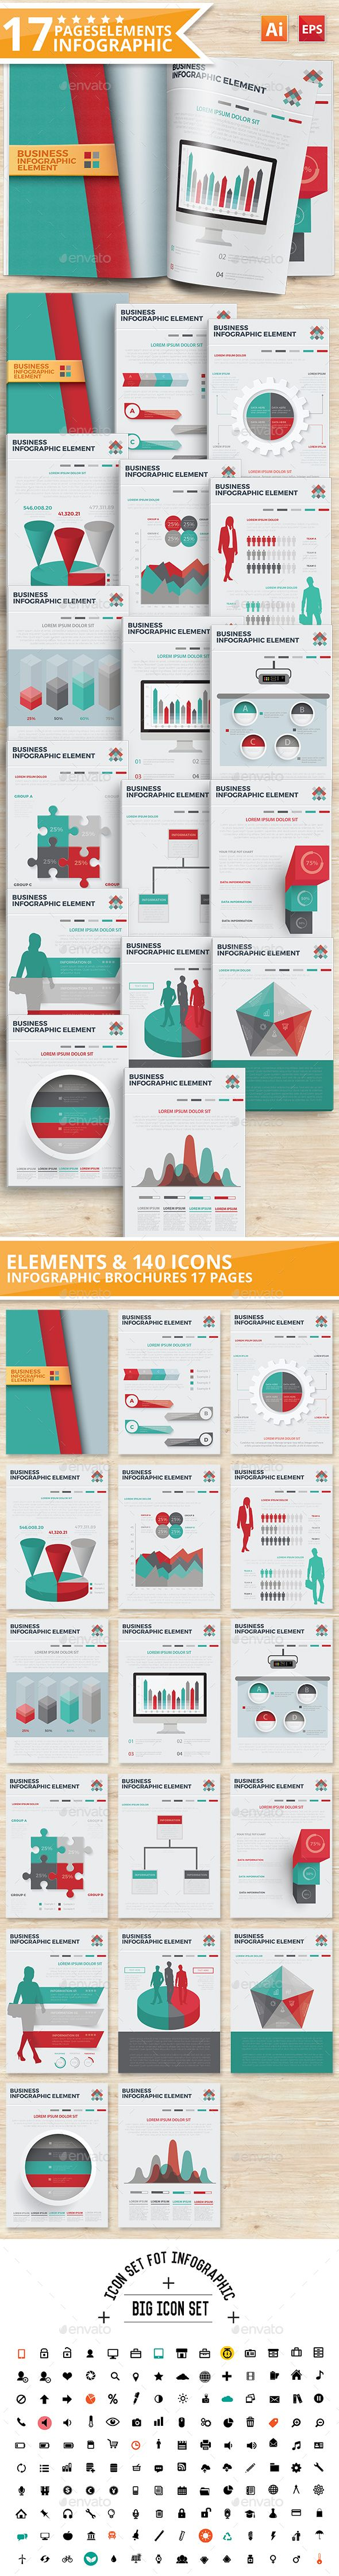 17 Elements Of Infographic Template Vector EPS, AI #design Download: http://graphicriver.net/item/17-elements-of-infographic-design/13571858?ref=ksioks